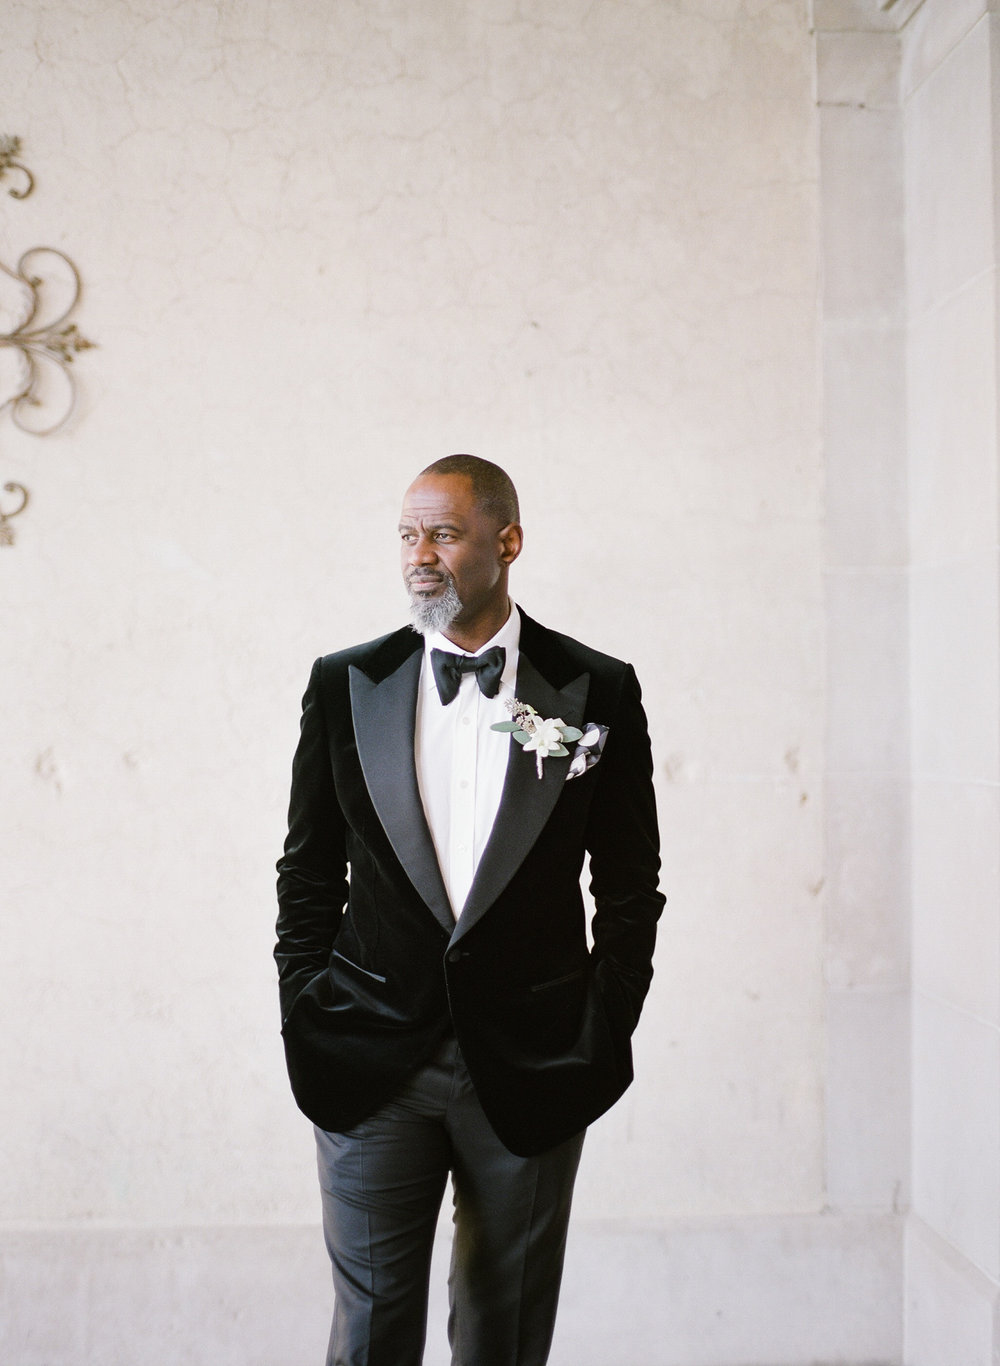 Brian-McKnight-wedding-oheka-castle-046.jpg